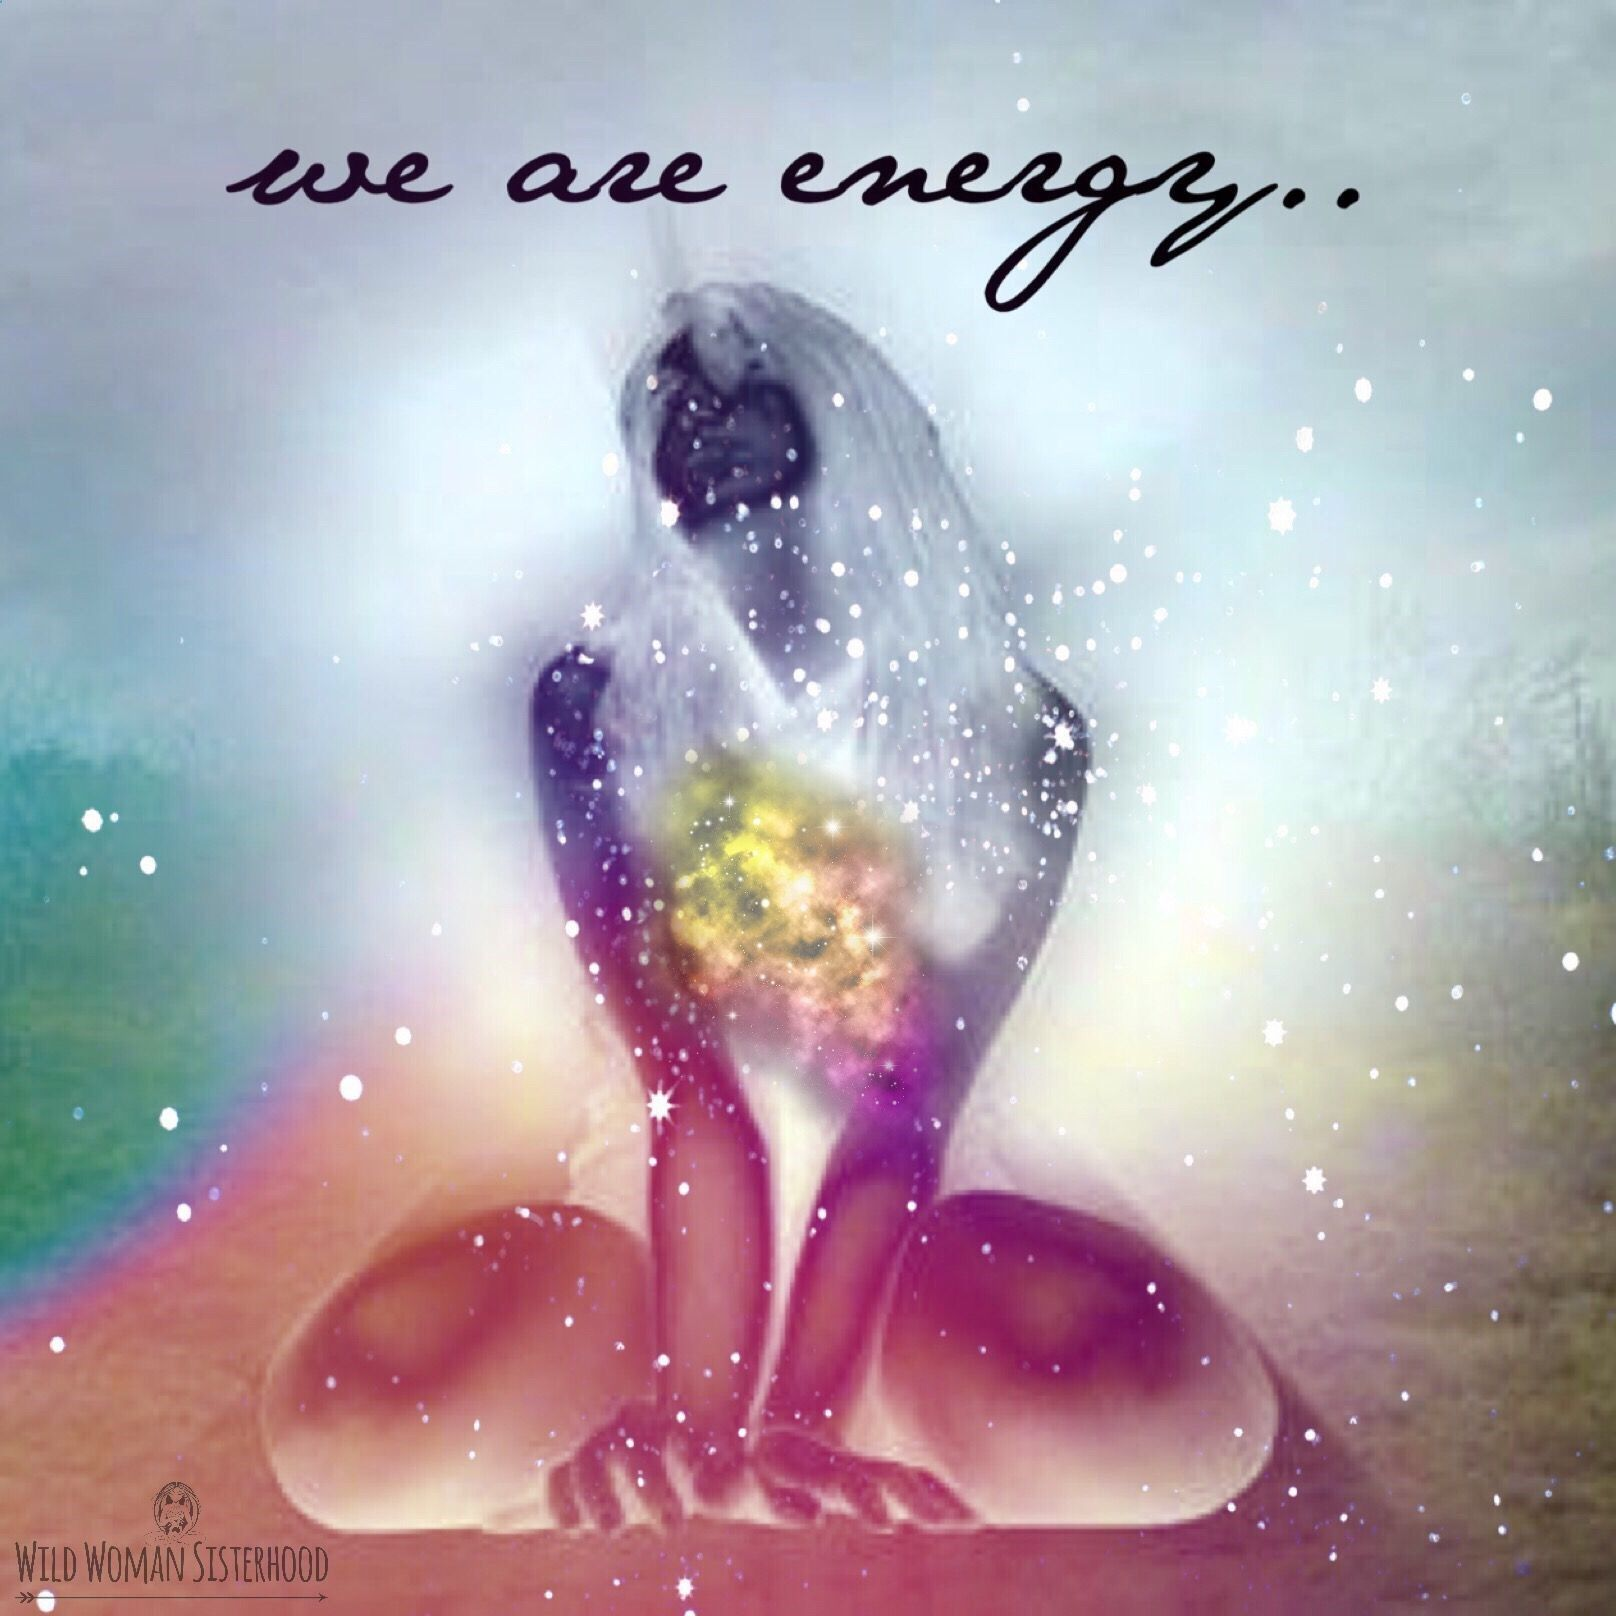 Vibrational Energy - life is energy ... people, animals, trees, flowers ... were all equal, we have different experiences of life, and yet were all the same, we are energy My long term illness is finally going away, and I think I might have found the love of my life.